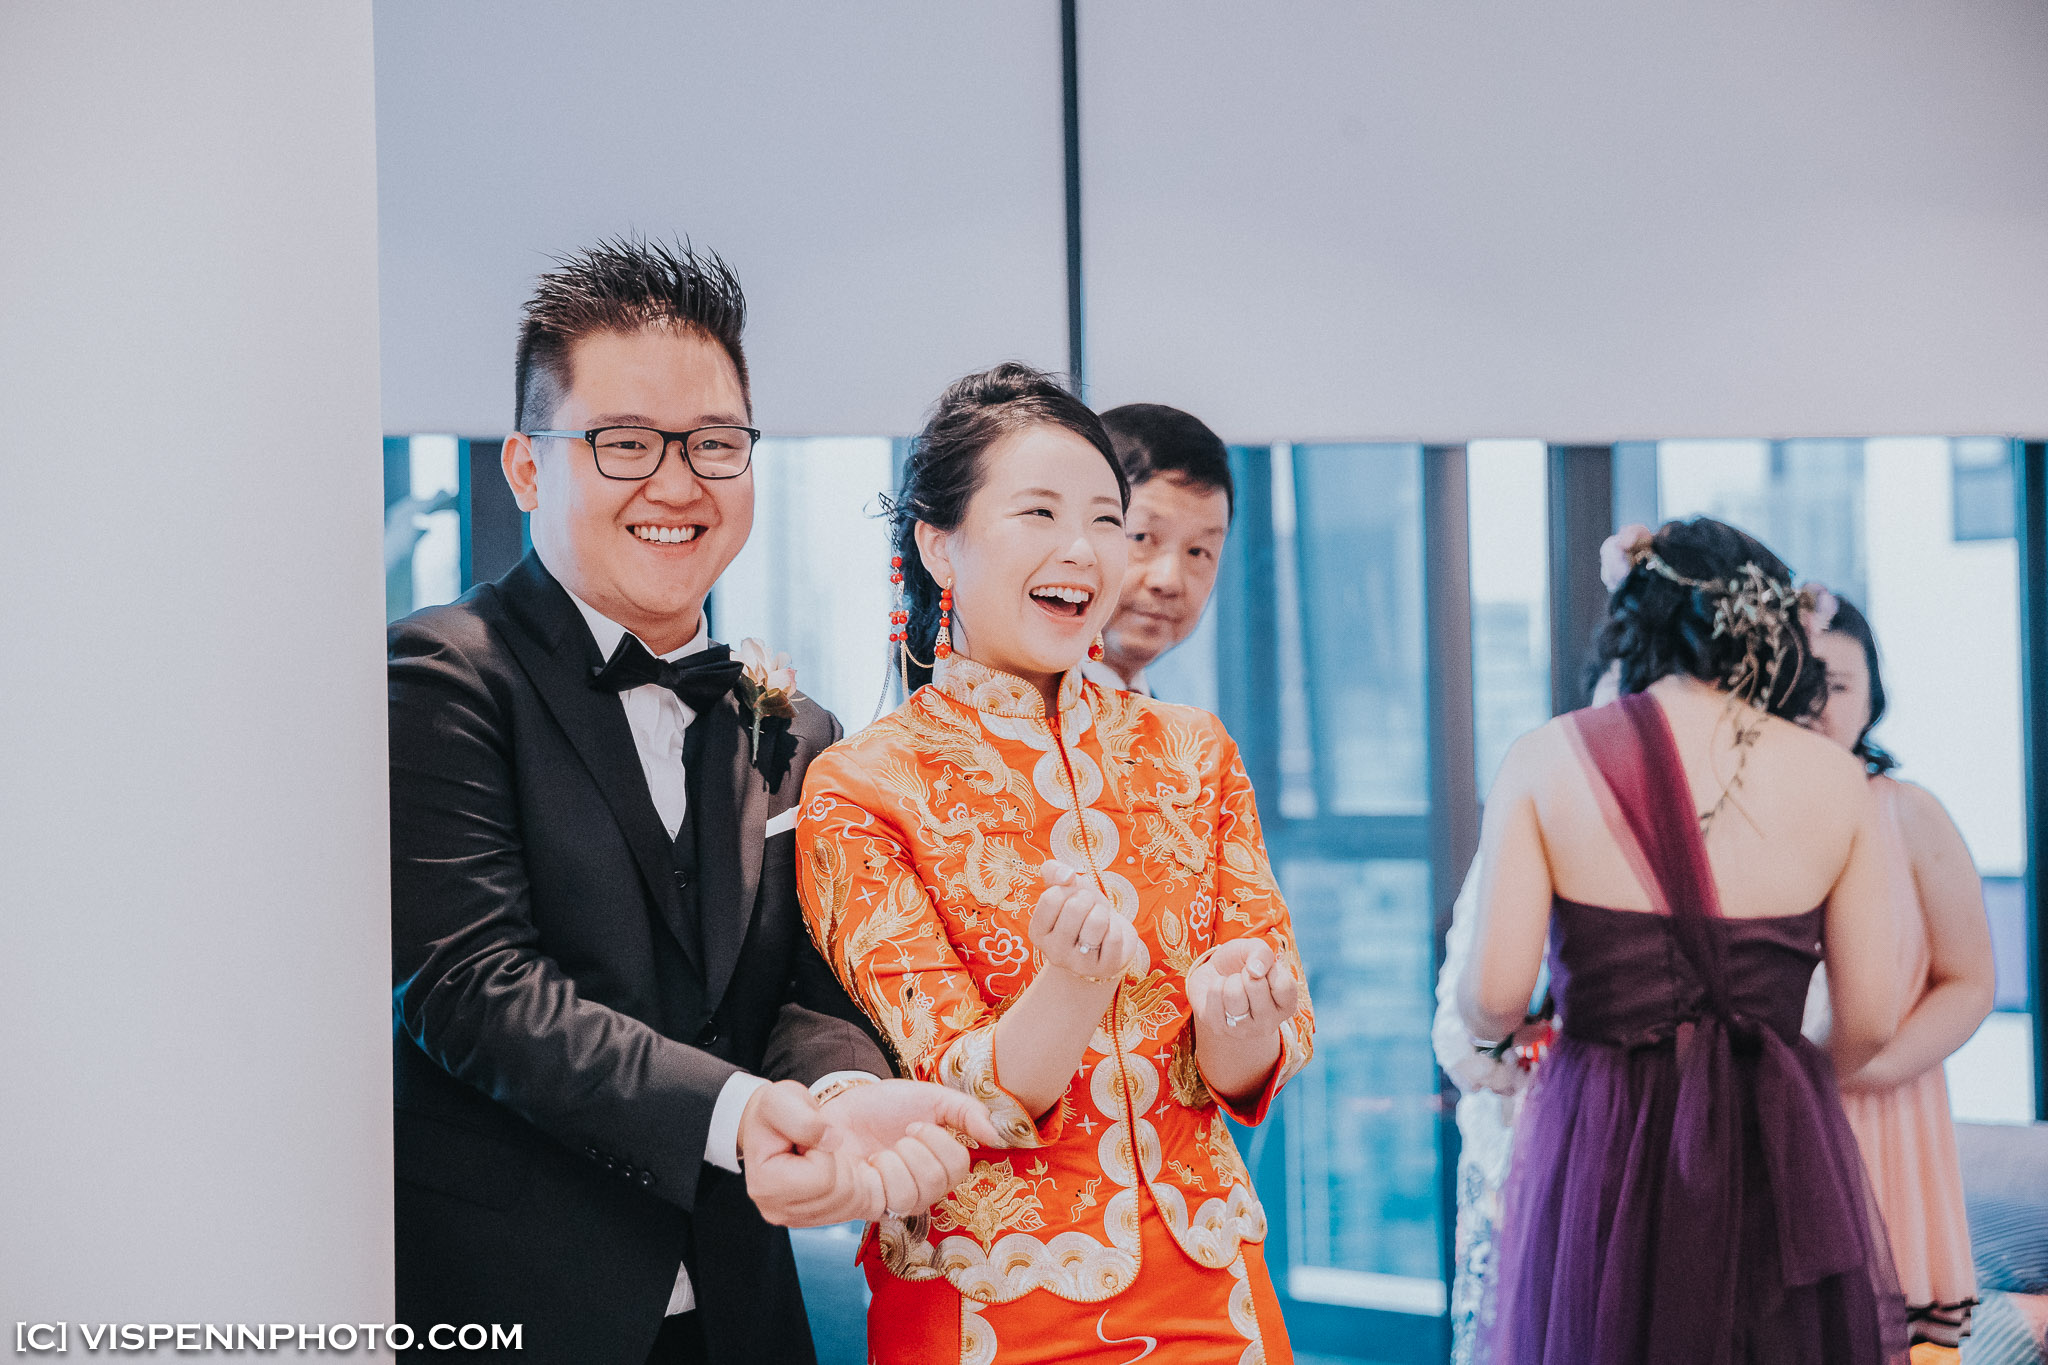 WEDDING DAY Photography Melbourne 1DX 1495